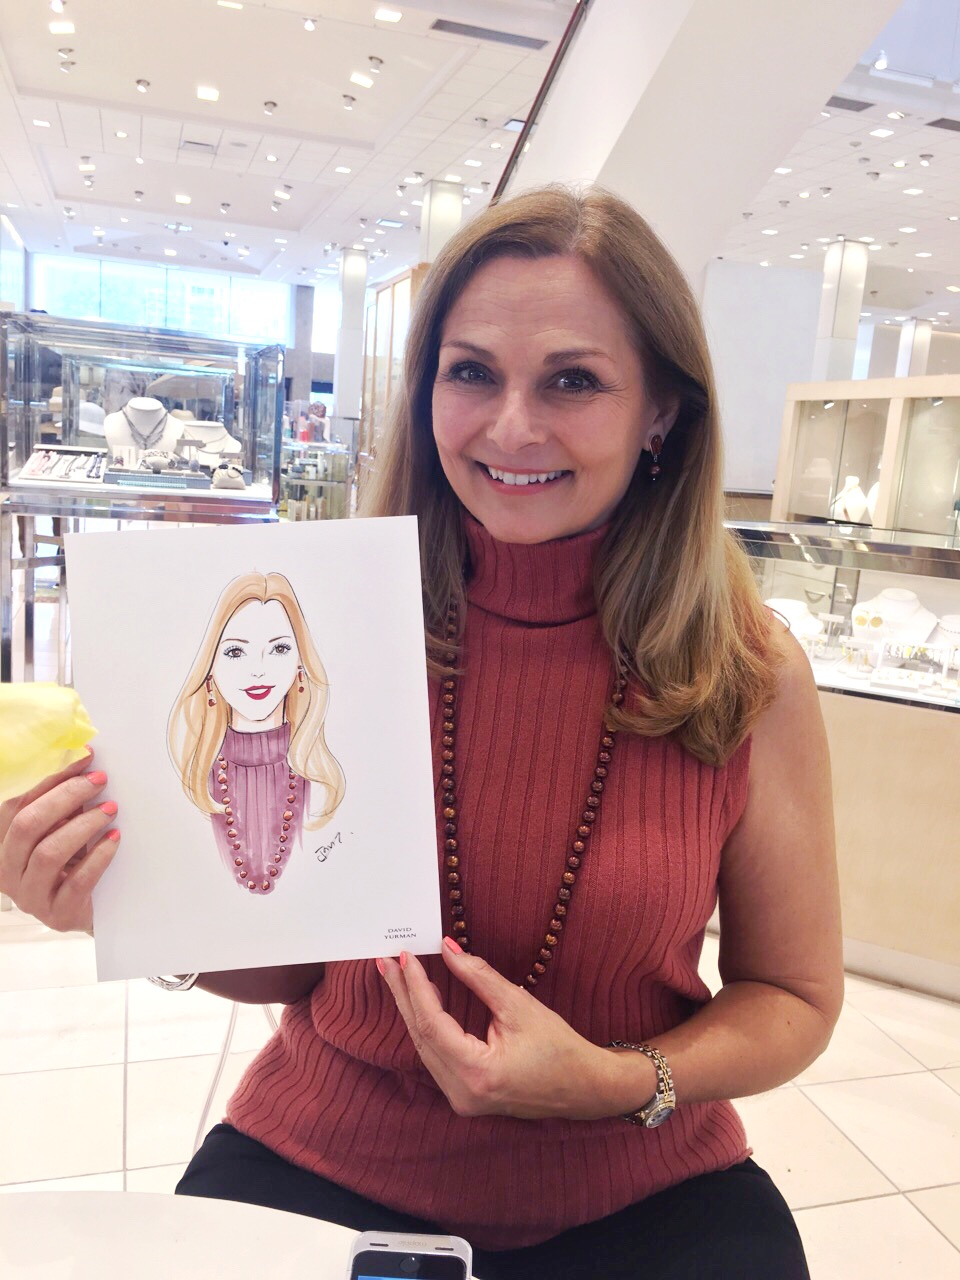 Live-sketch event for David Yurman by Fashion illustrator Rongrong DeVoe